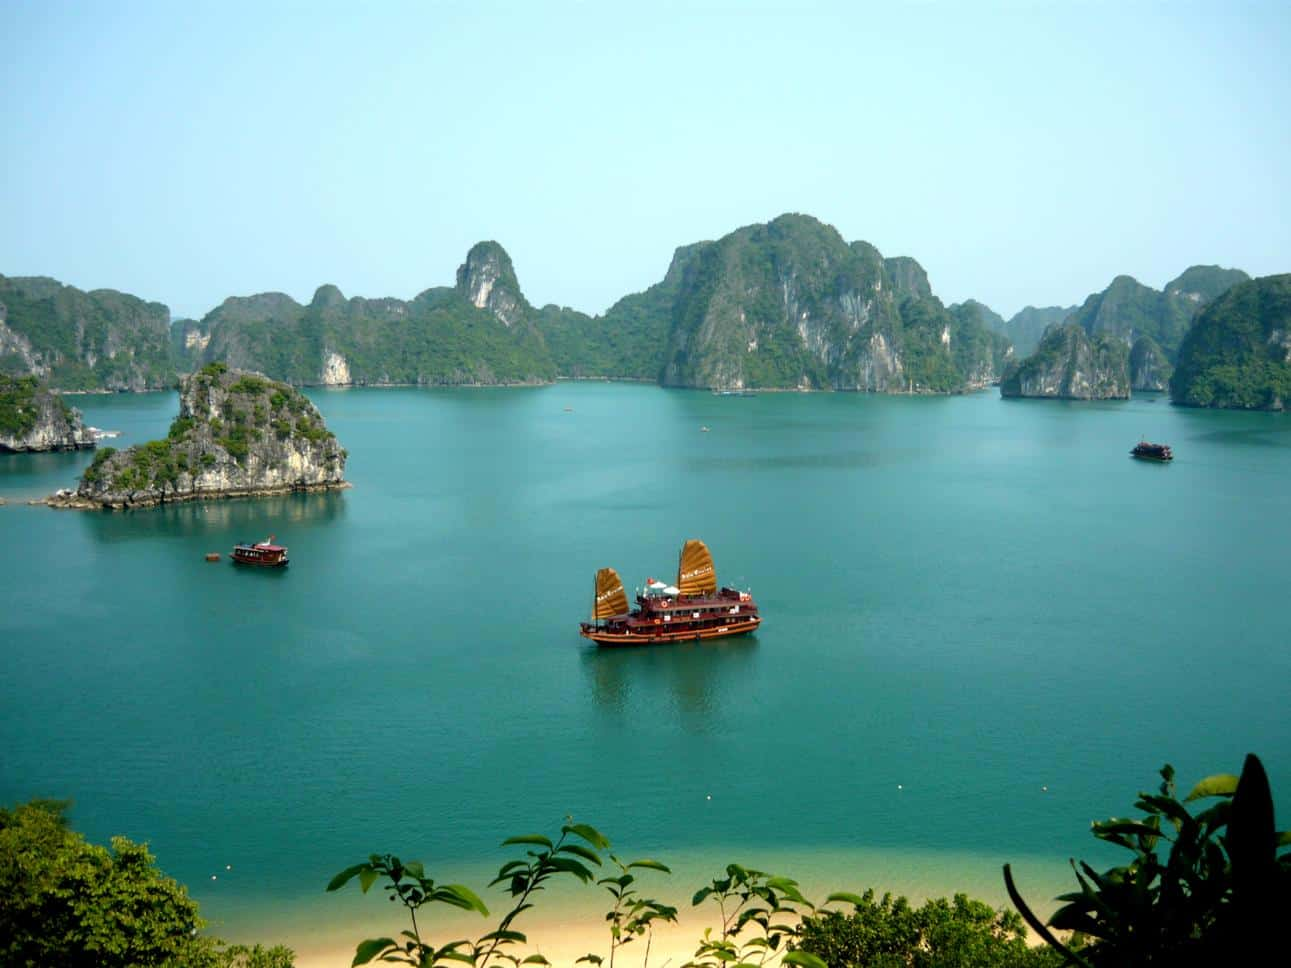 Where is Halong Bay